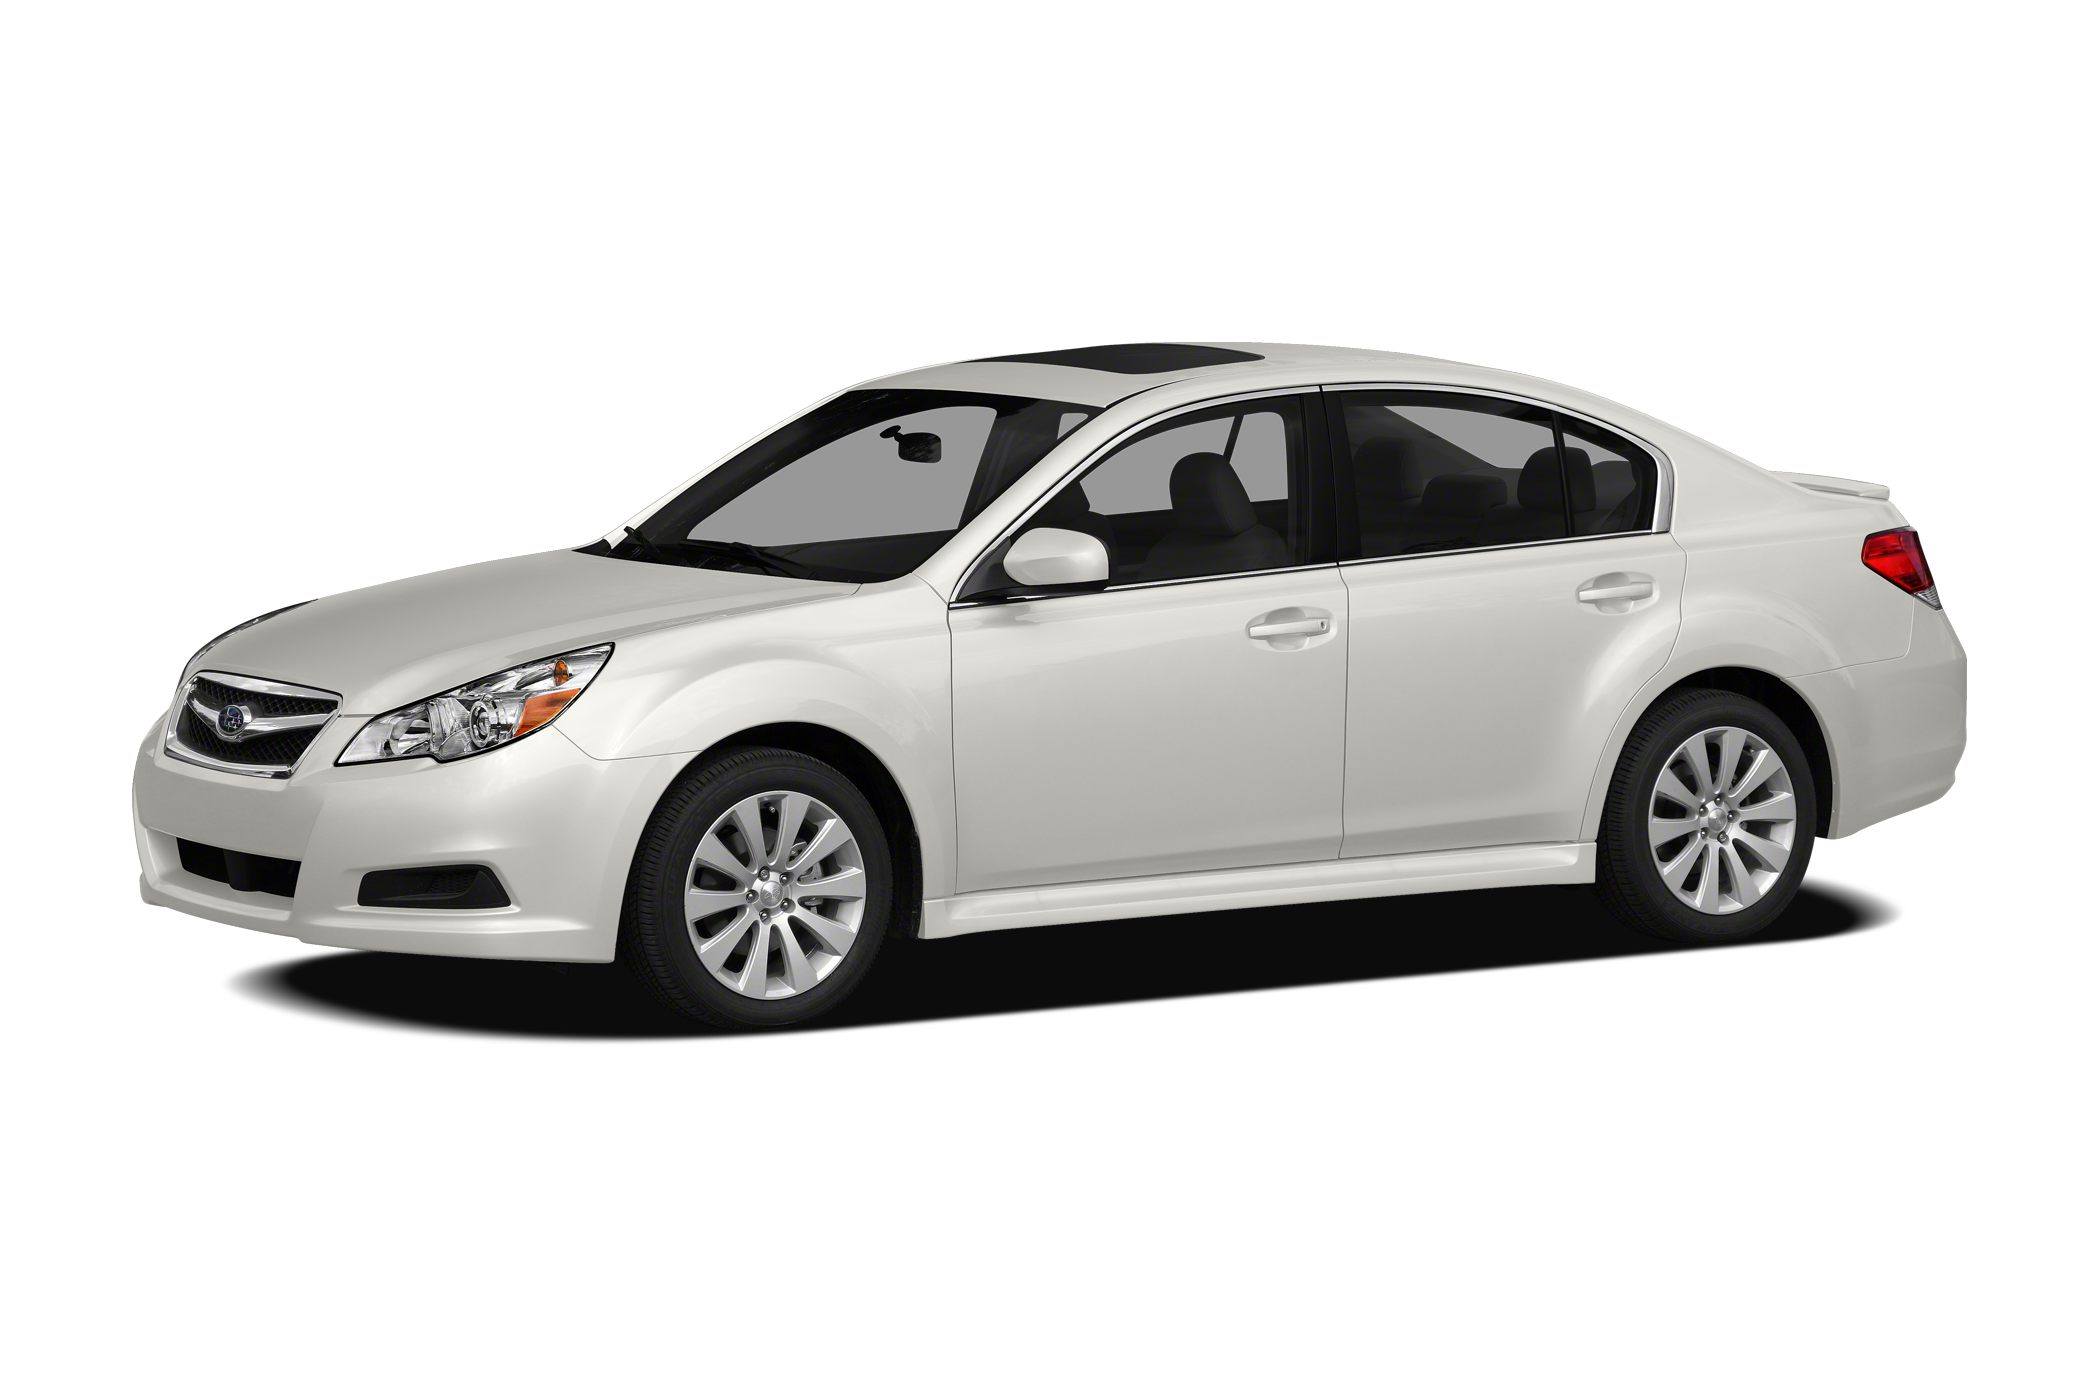 2012 Subaru Legacy 2.5i Limited Sedan for sale in Toms River for $20,937 with 18,666 miles.